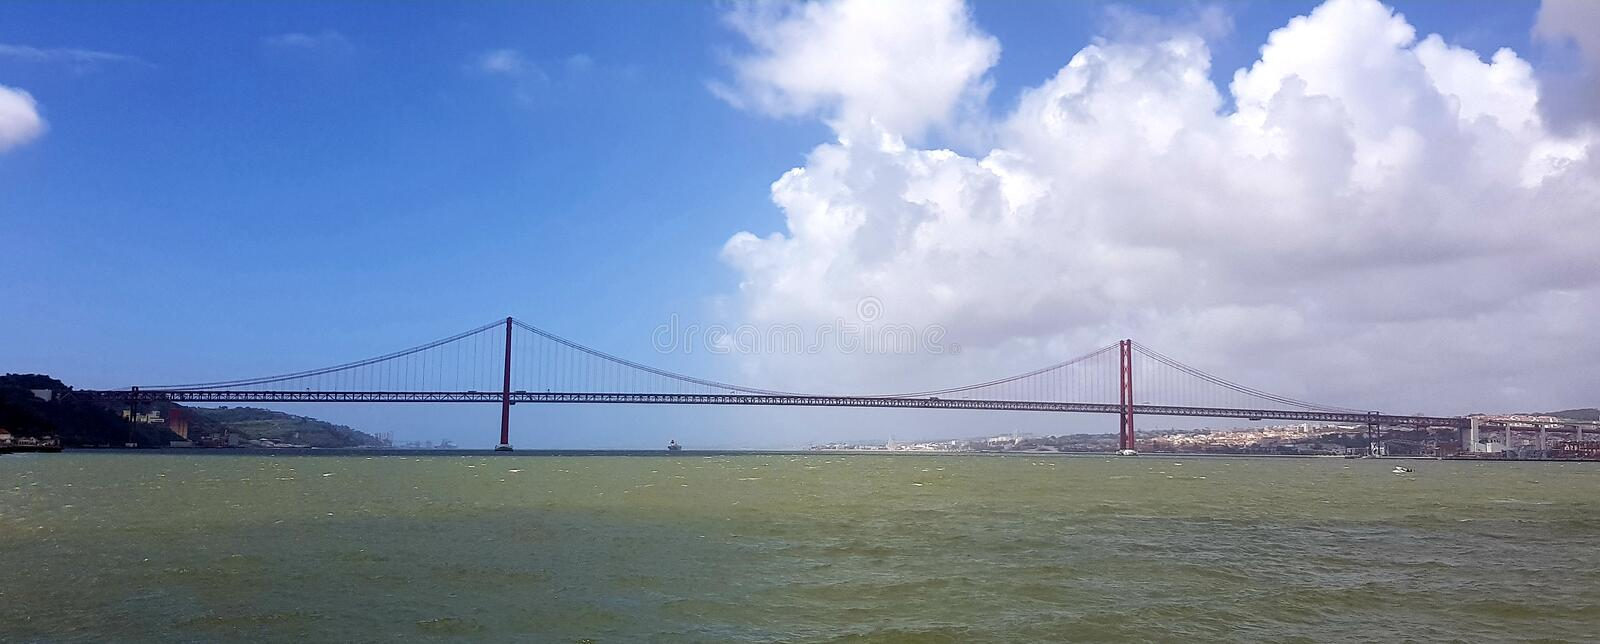 25th April Bridge in Lisbon royalty free stock image